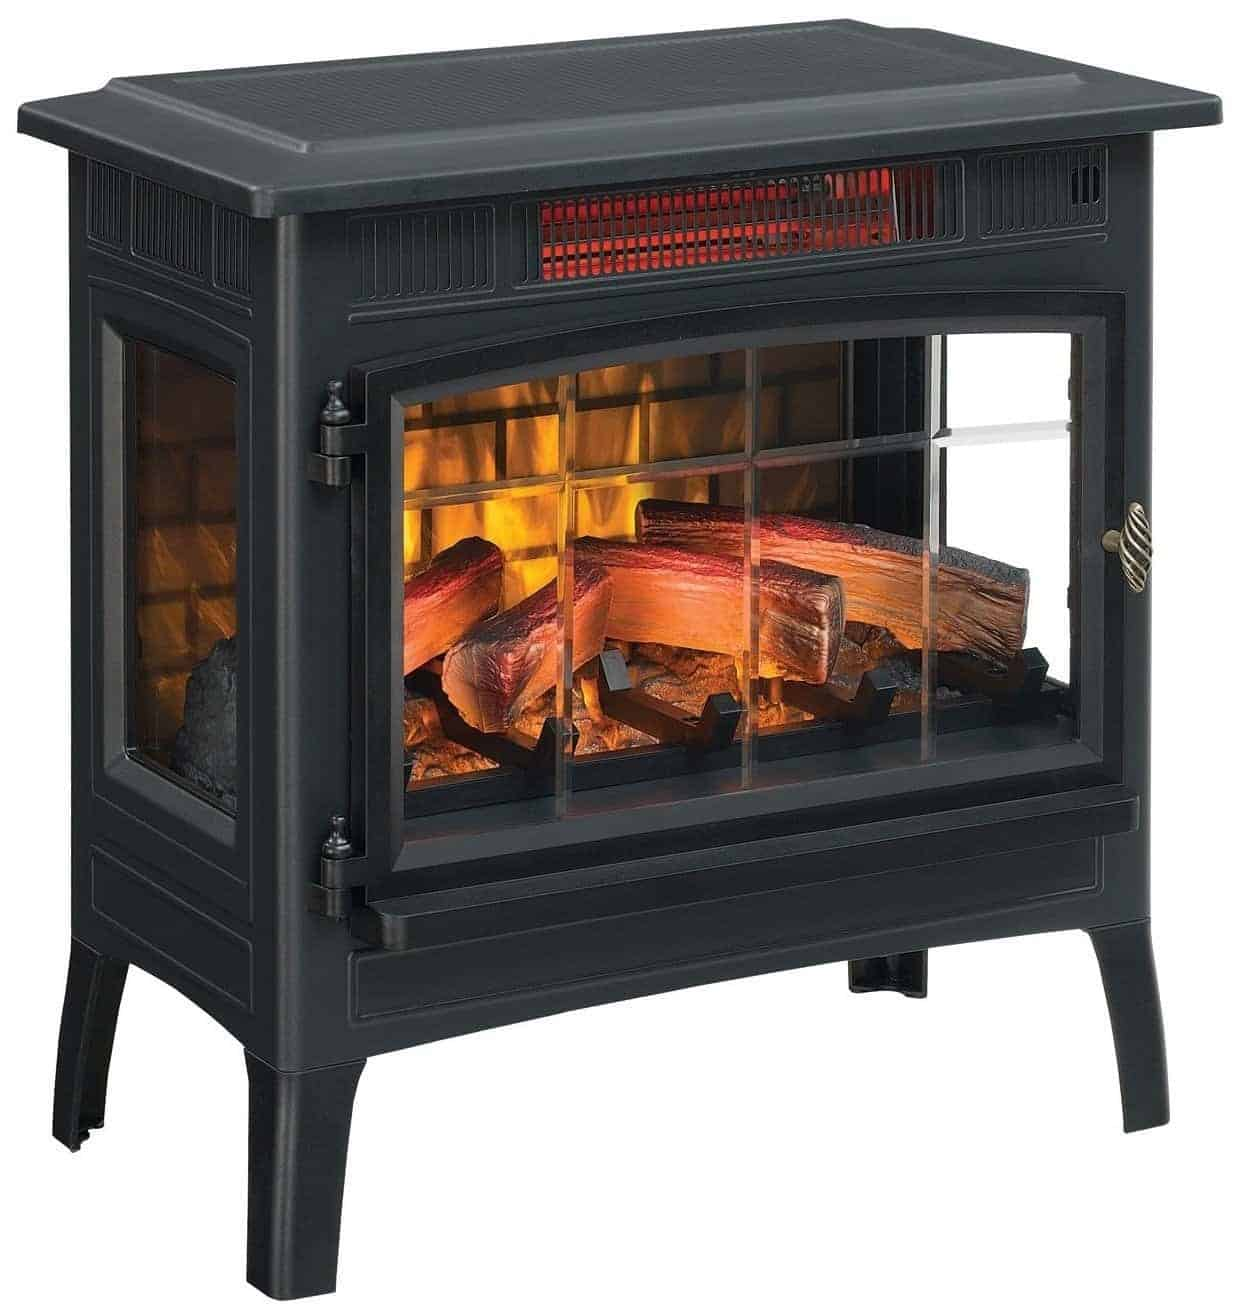 Duraflame DFI-5010-01 Infrared Quartz Fireplace Stove with 3D Flame Effect and Remote Control